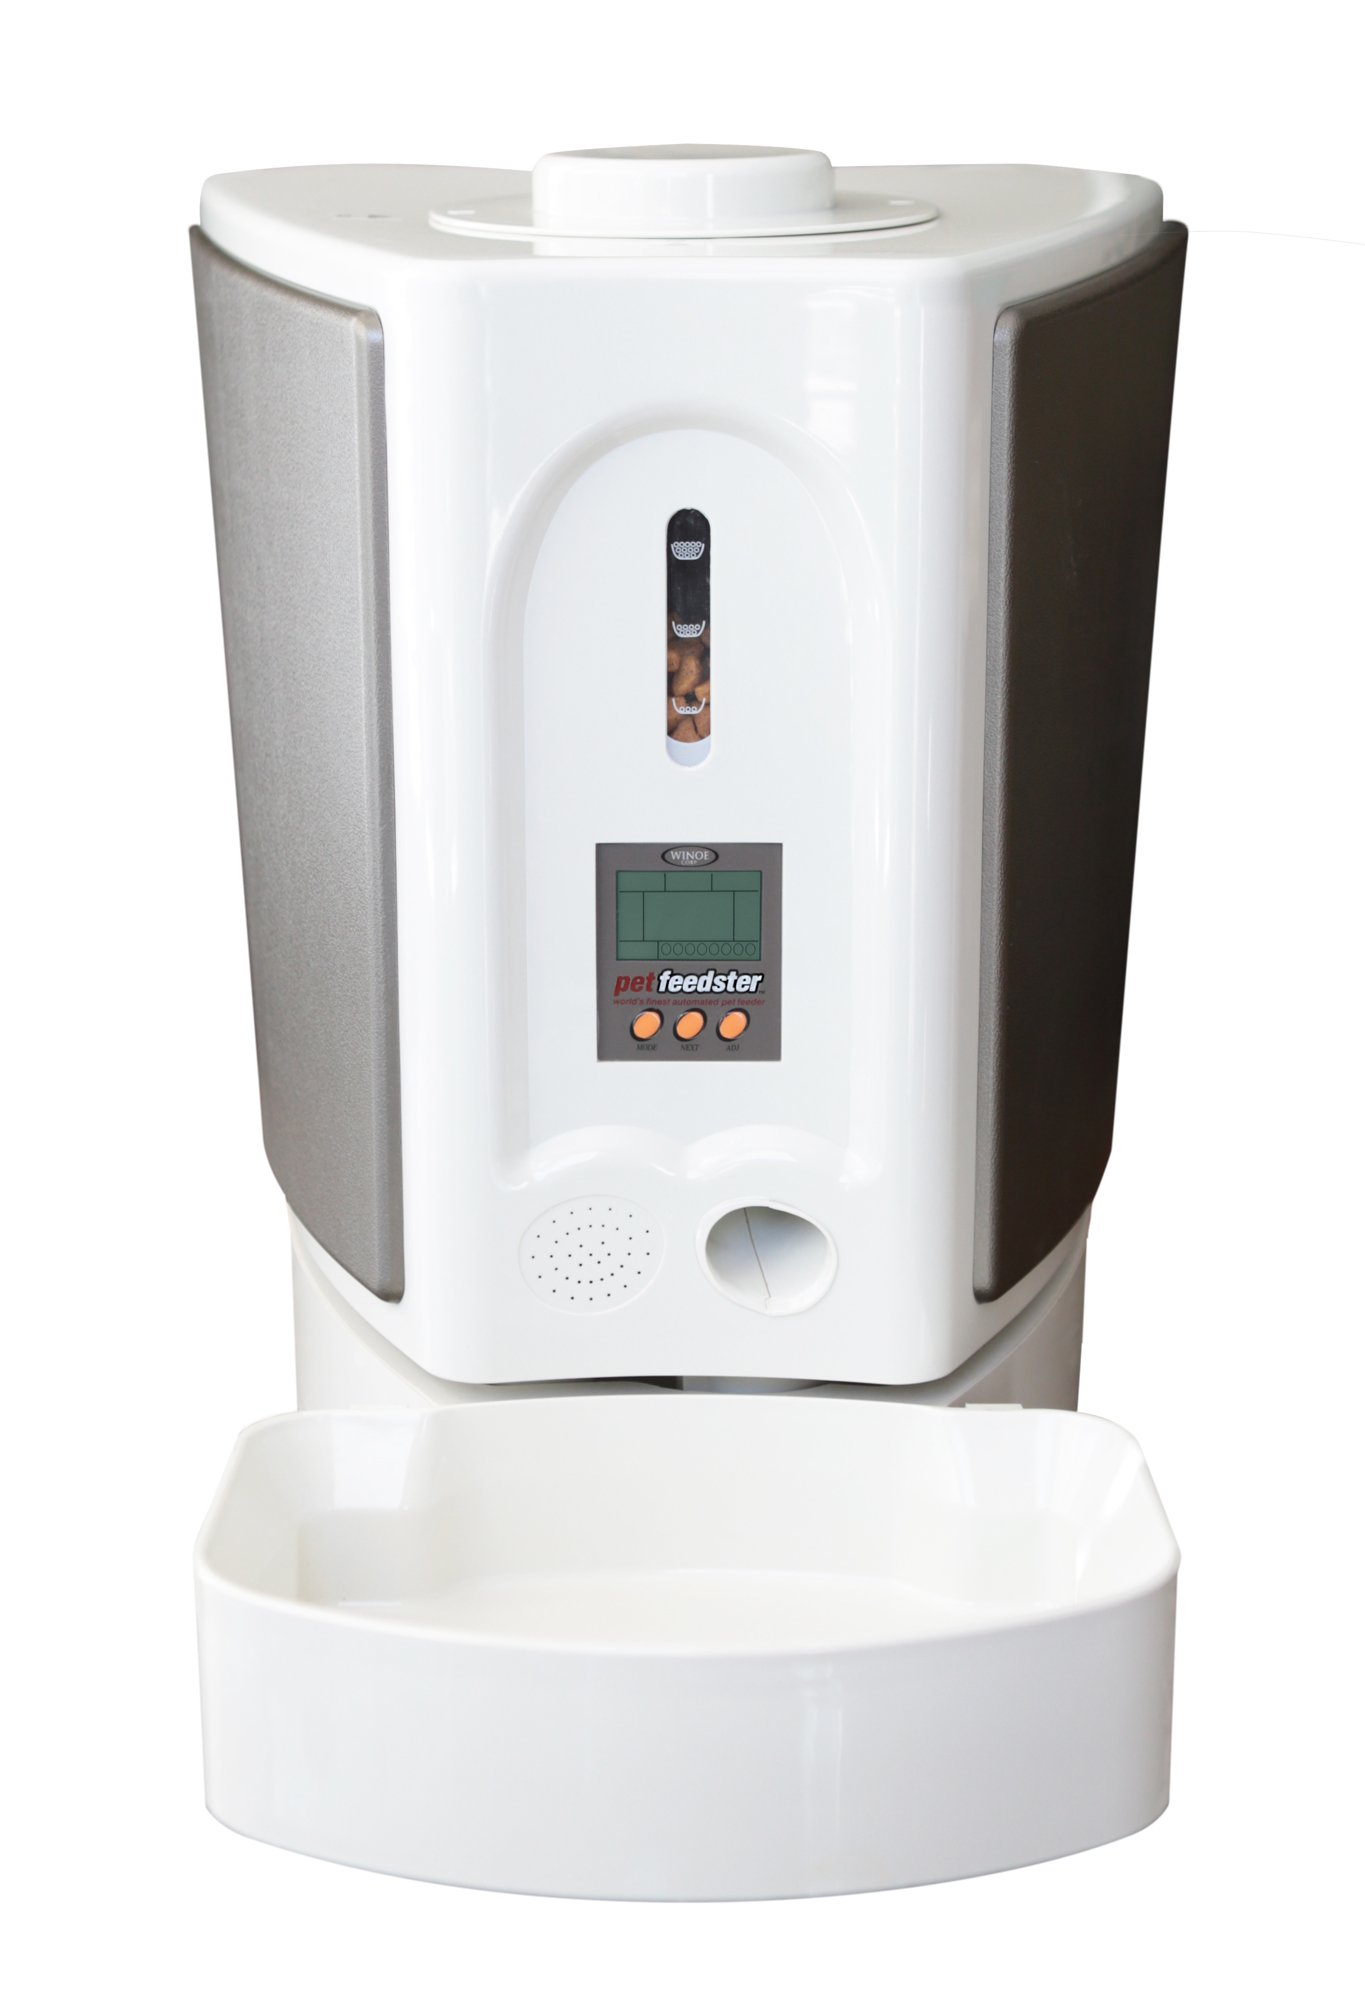 New! Pet Feedster PF-10 PLUS DOG - Automated Pet Feeder for Dogs